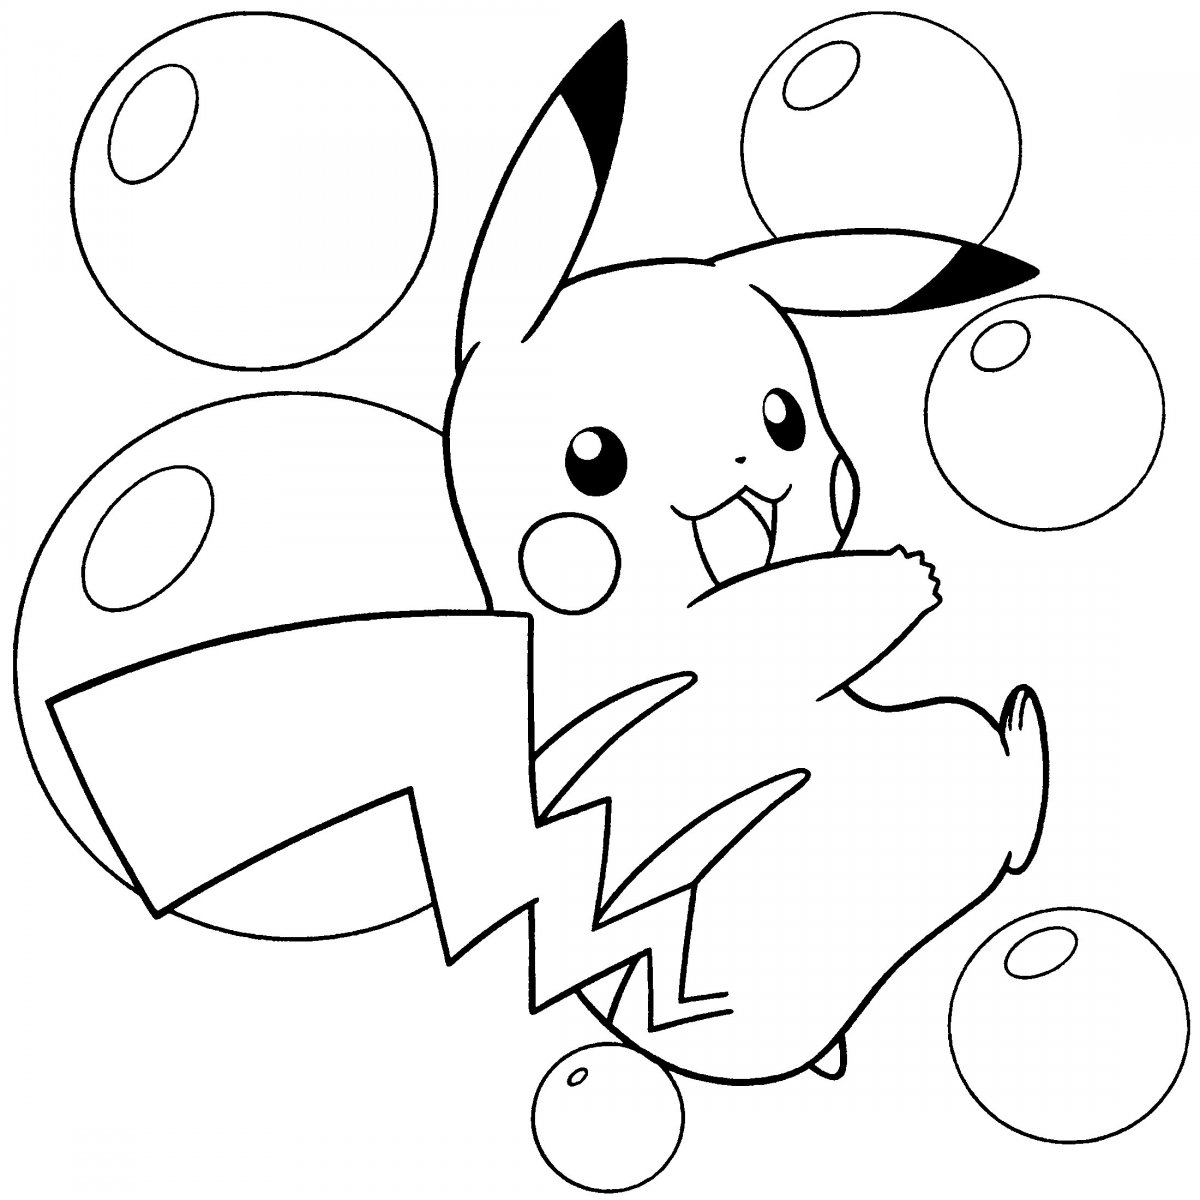 pokemon coloring pages google images - photo#37